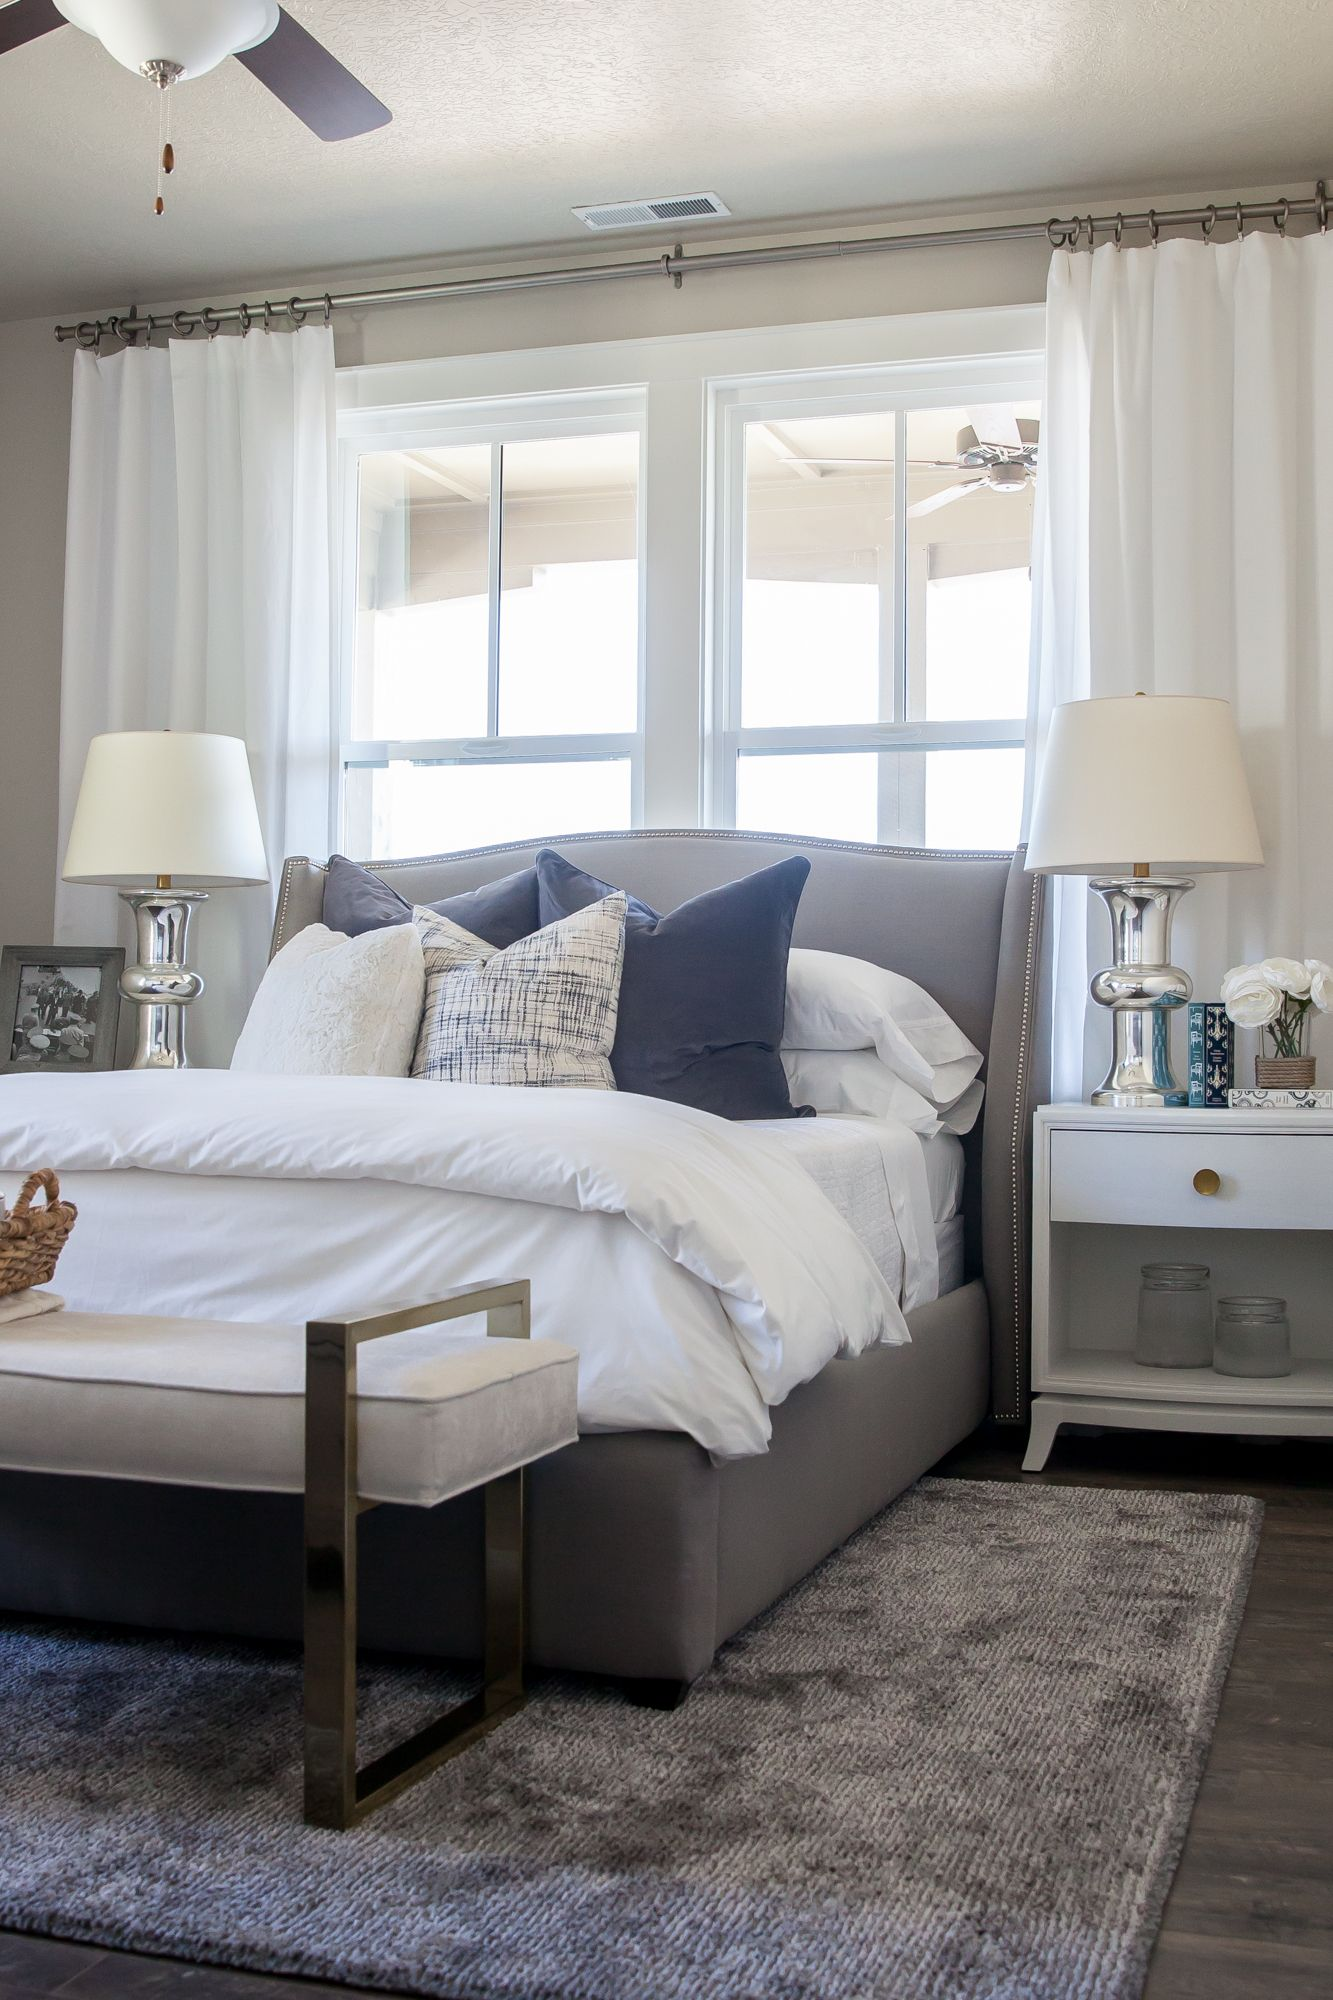 Blue and white bedding - Guestroom Inspiration Alice Lane Home Collection Daybreak Lake Loft Gray Upholstered Bed In Master White Curtainswhite Beddingwhite